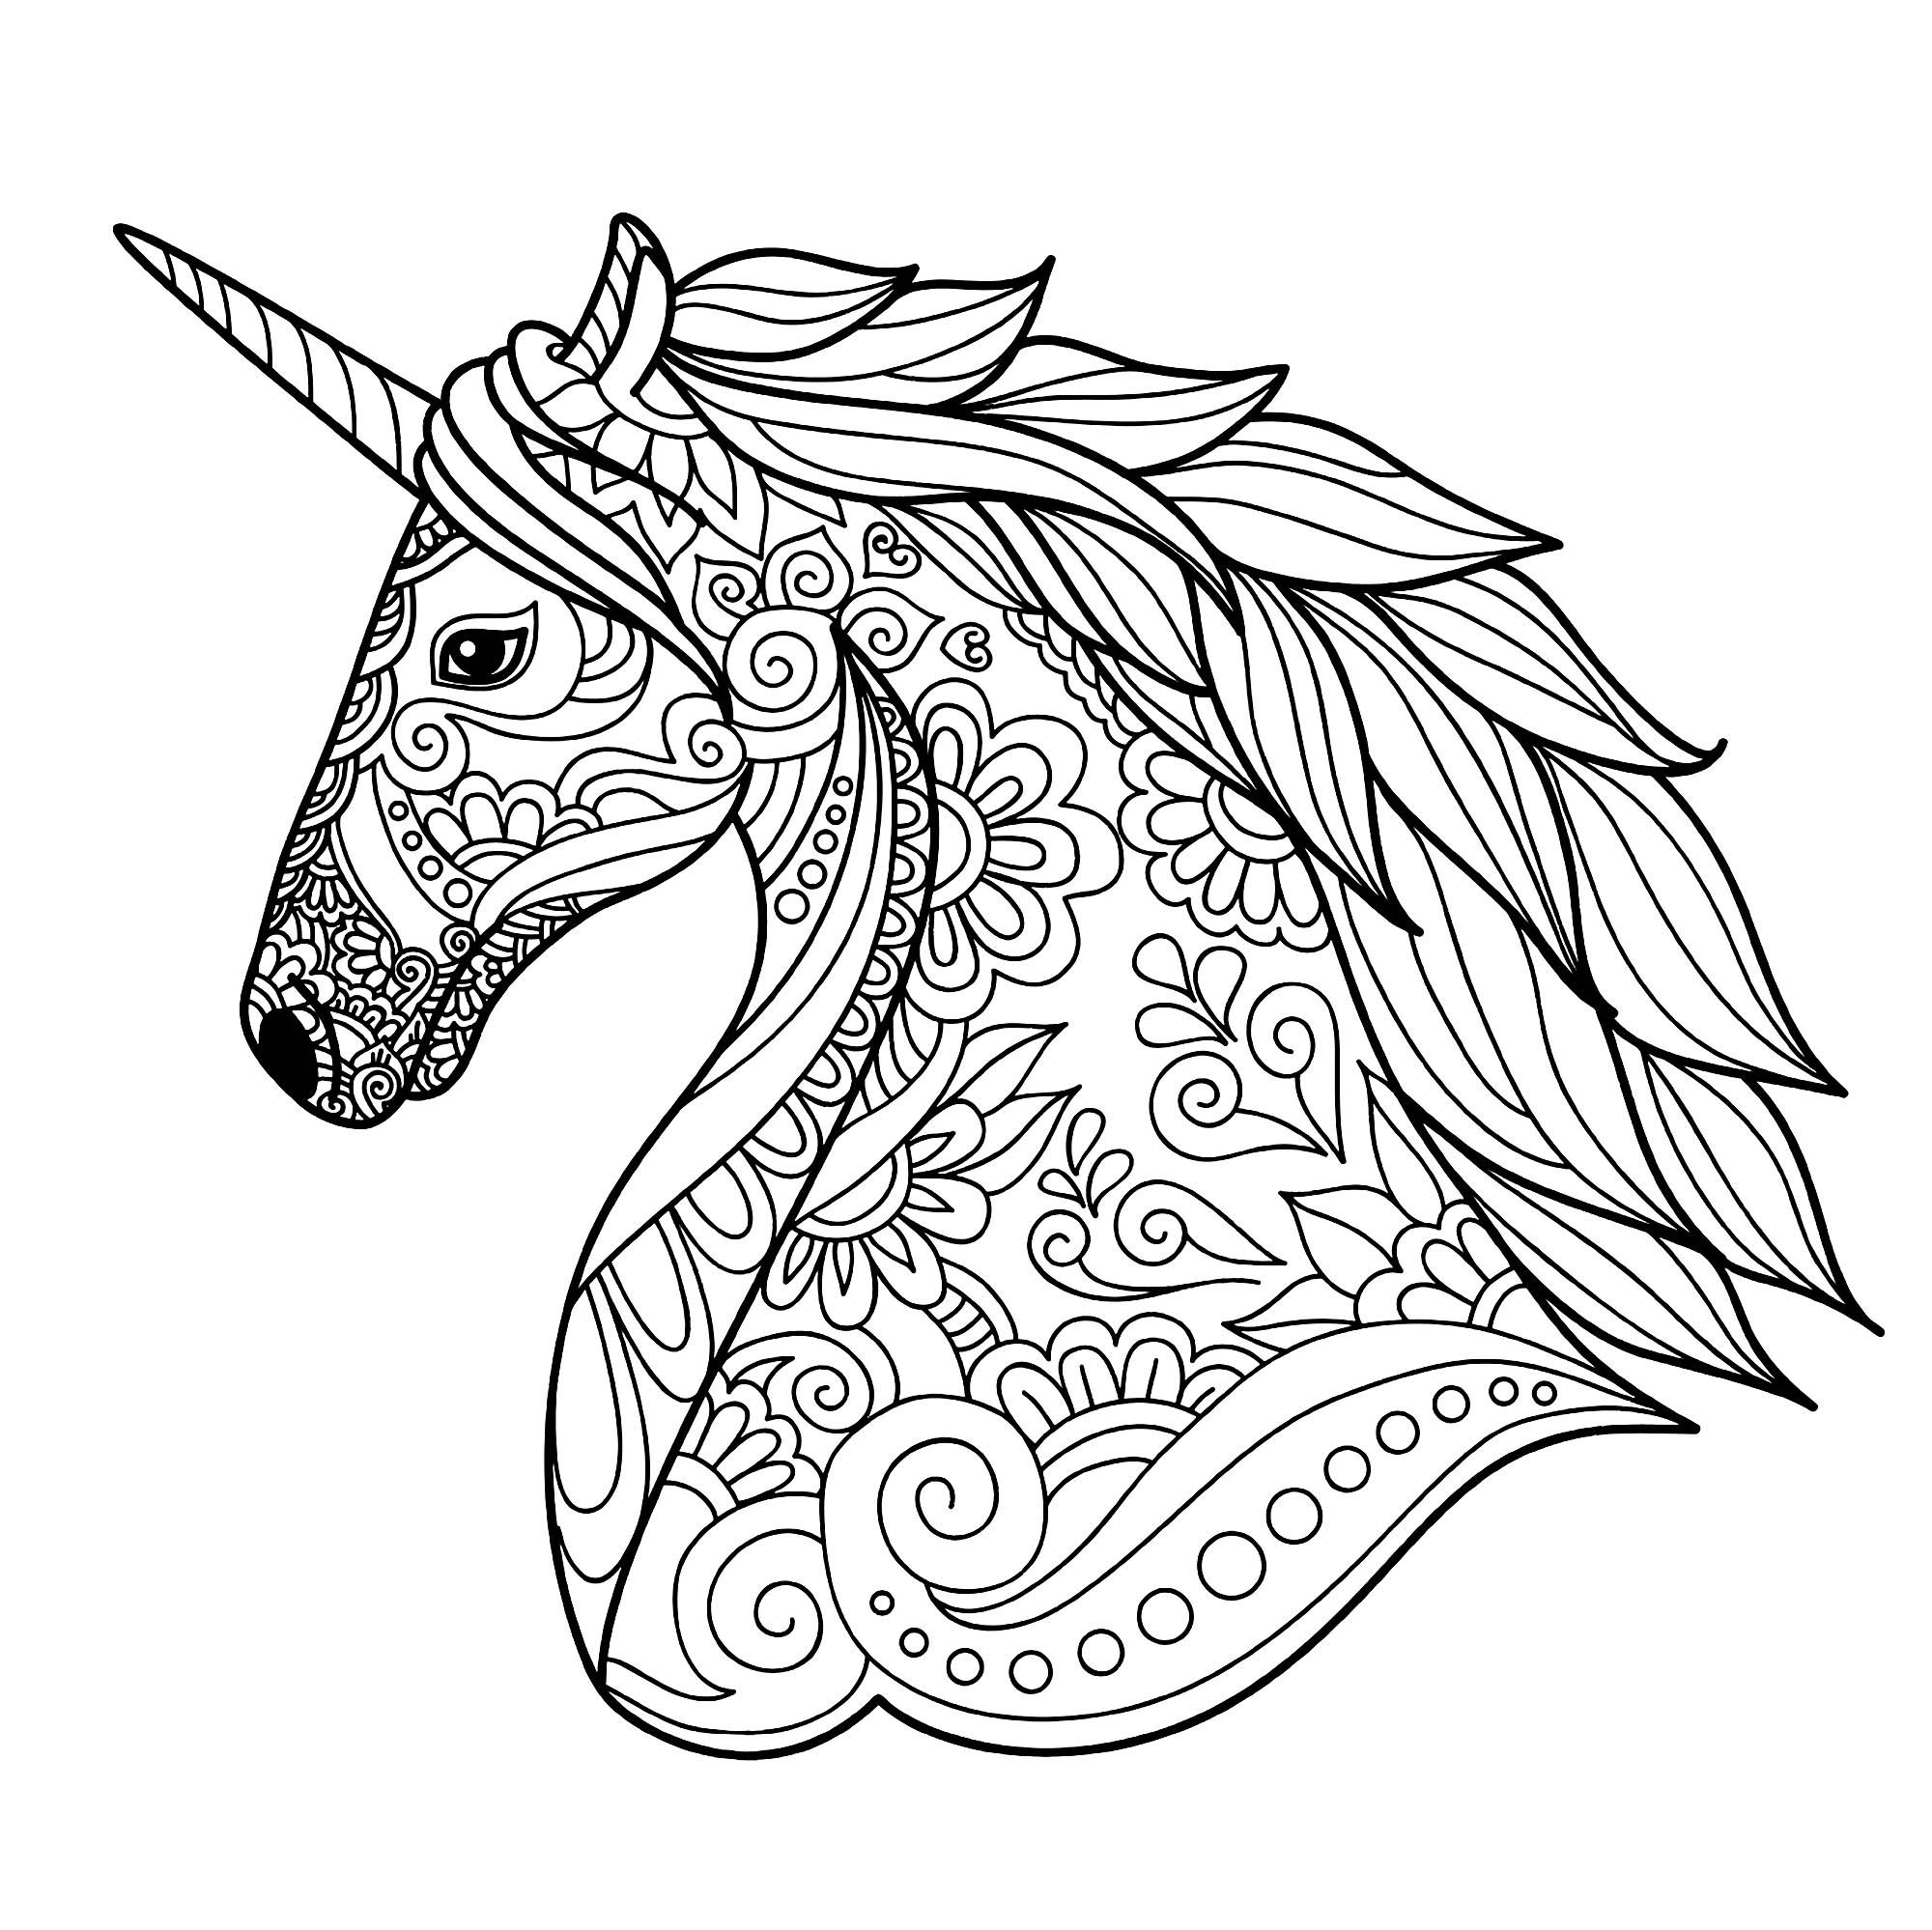 Cool Unicorn Coloring Pages Fantastic Unicorn Coloring Pages Ideas For Kids Horse Coloring Pages Animal Coloring Pages Unicorn Coloring Pages